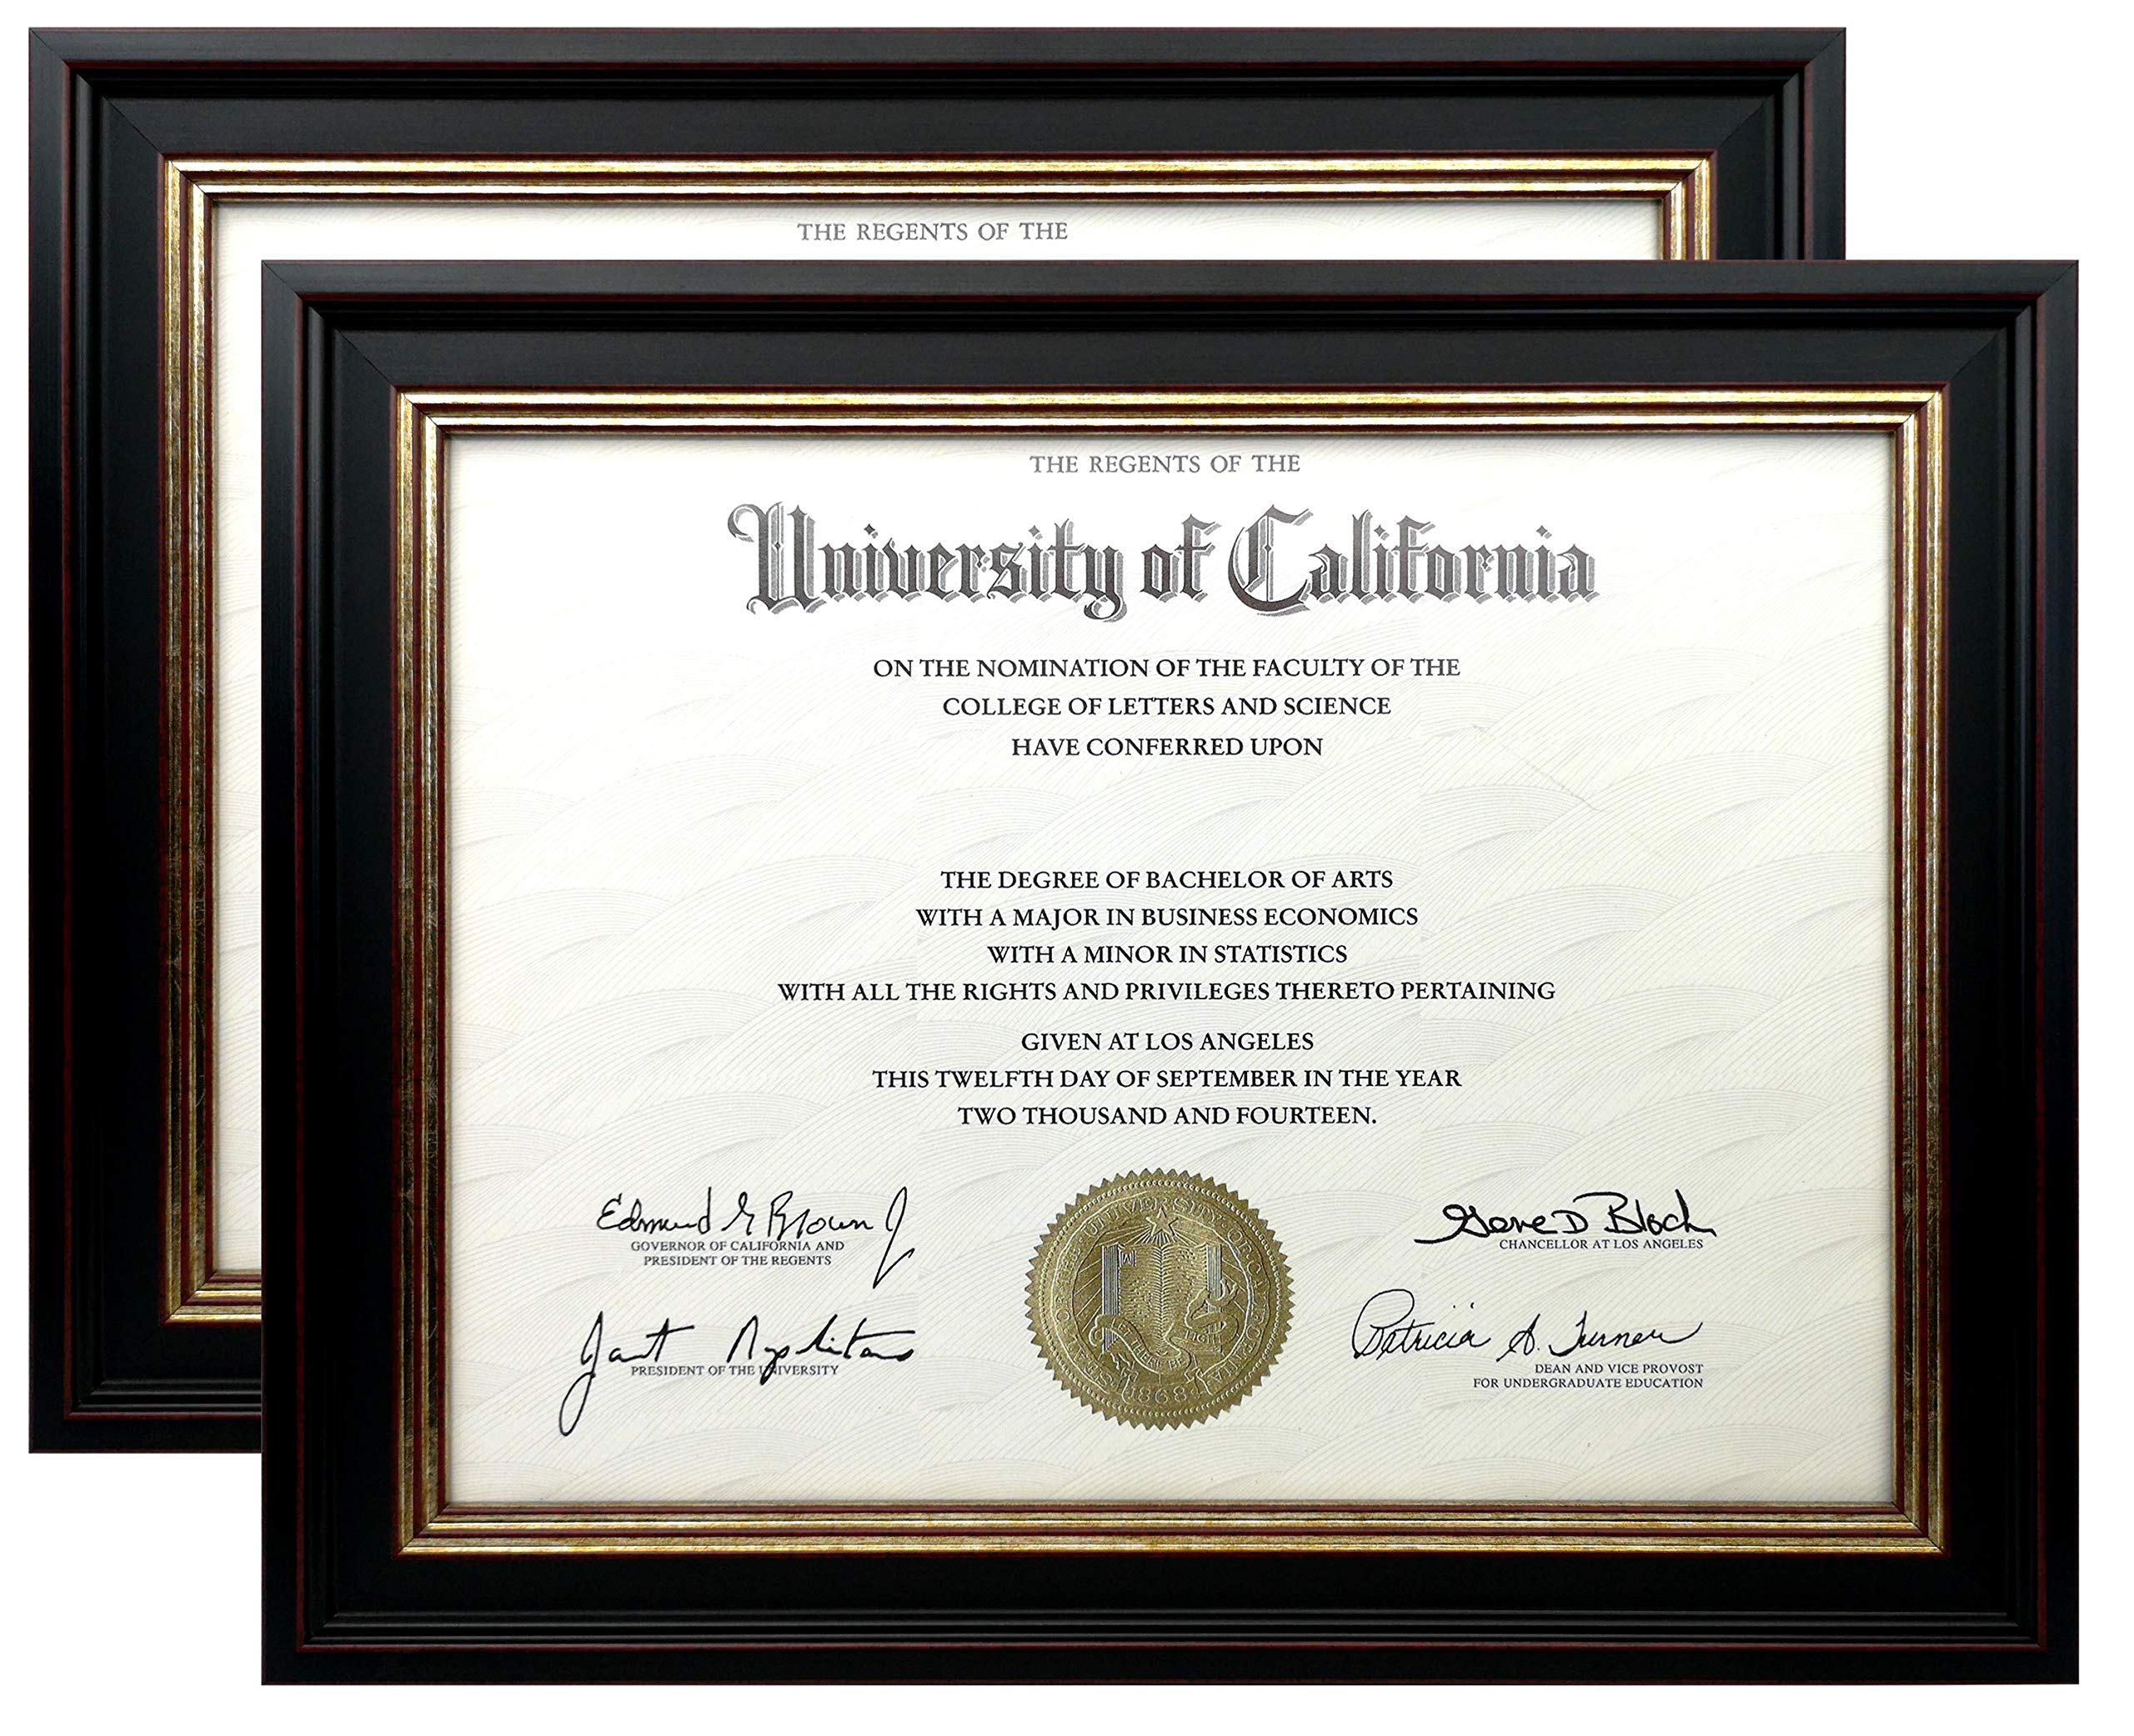 Onuri Inc - Luxurious Document Frame (2-Pack) - Classic 8.5x11 Picture Frame for Diploma Documents and Certificates by Onuri Inc.